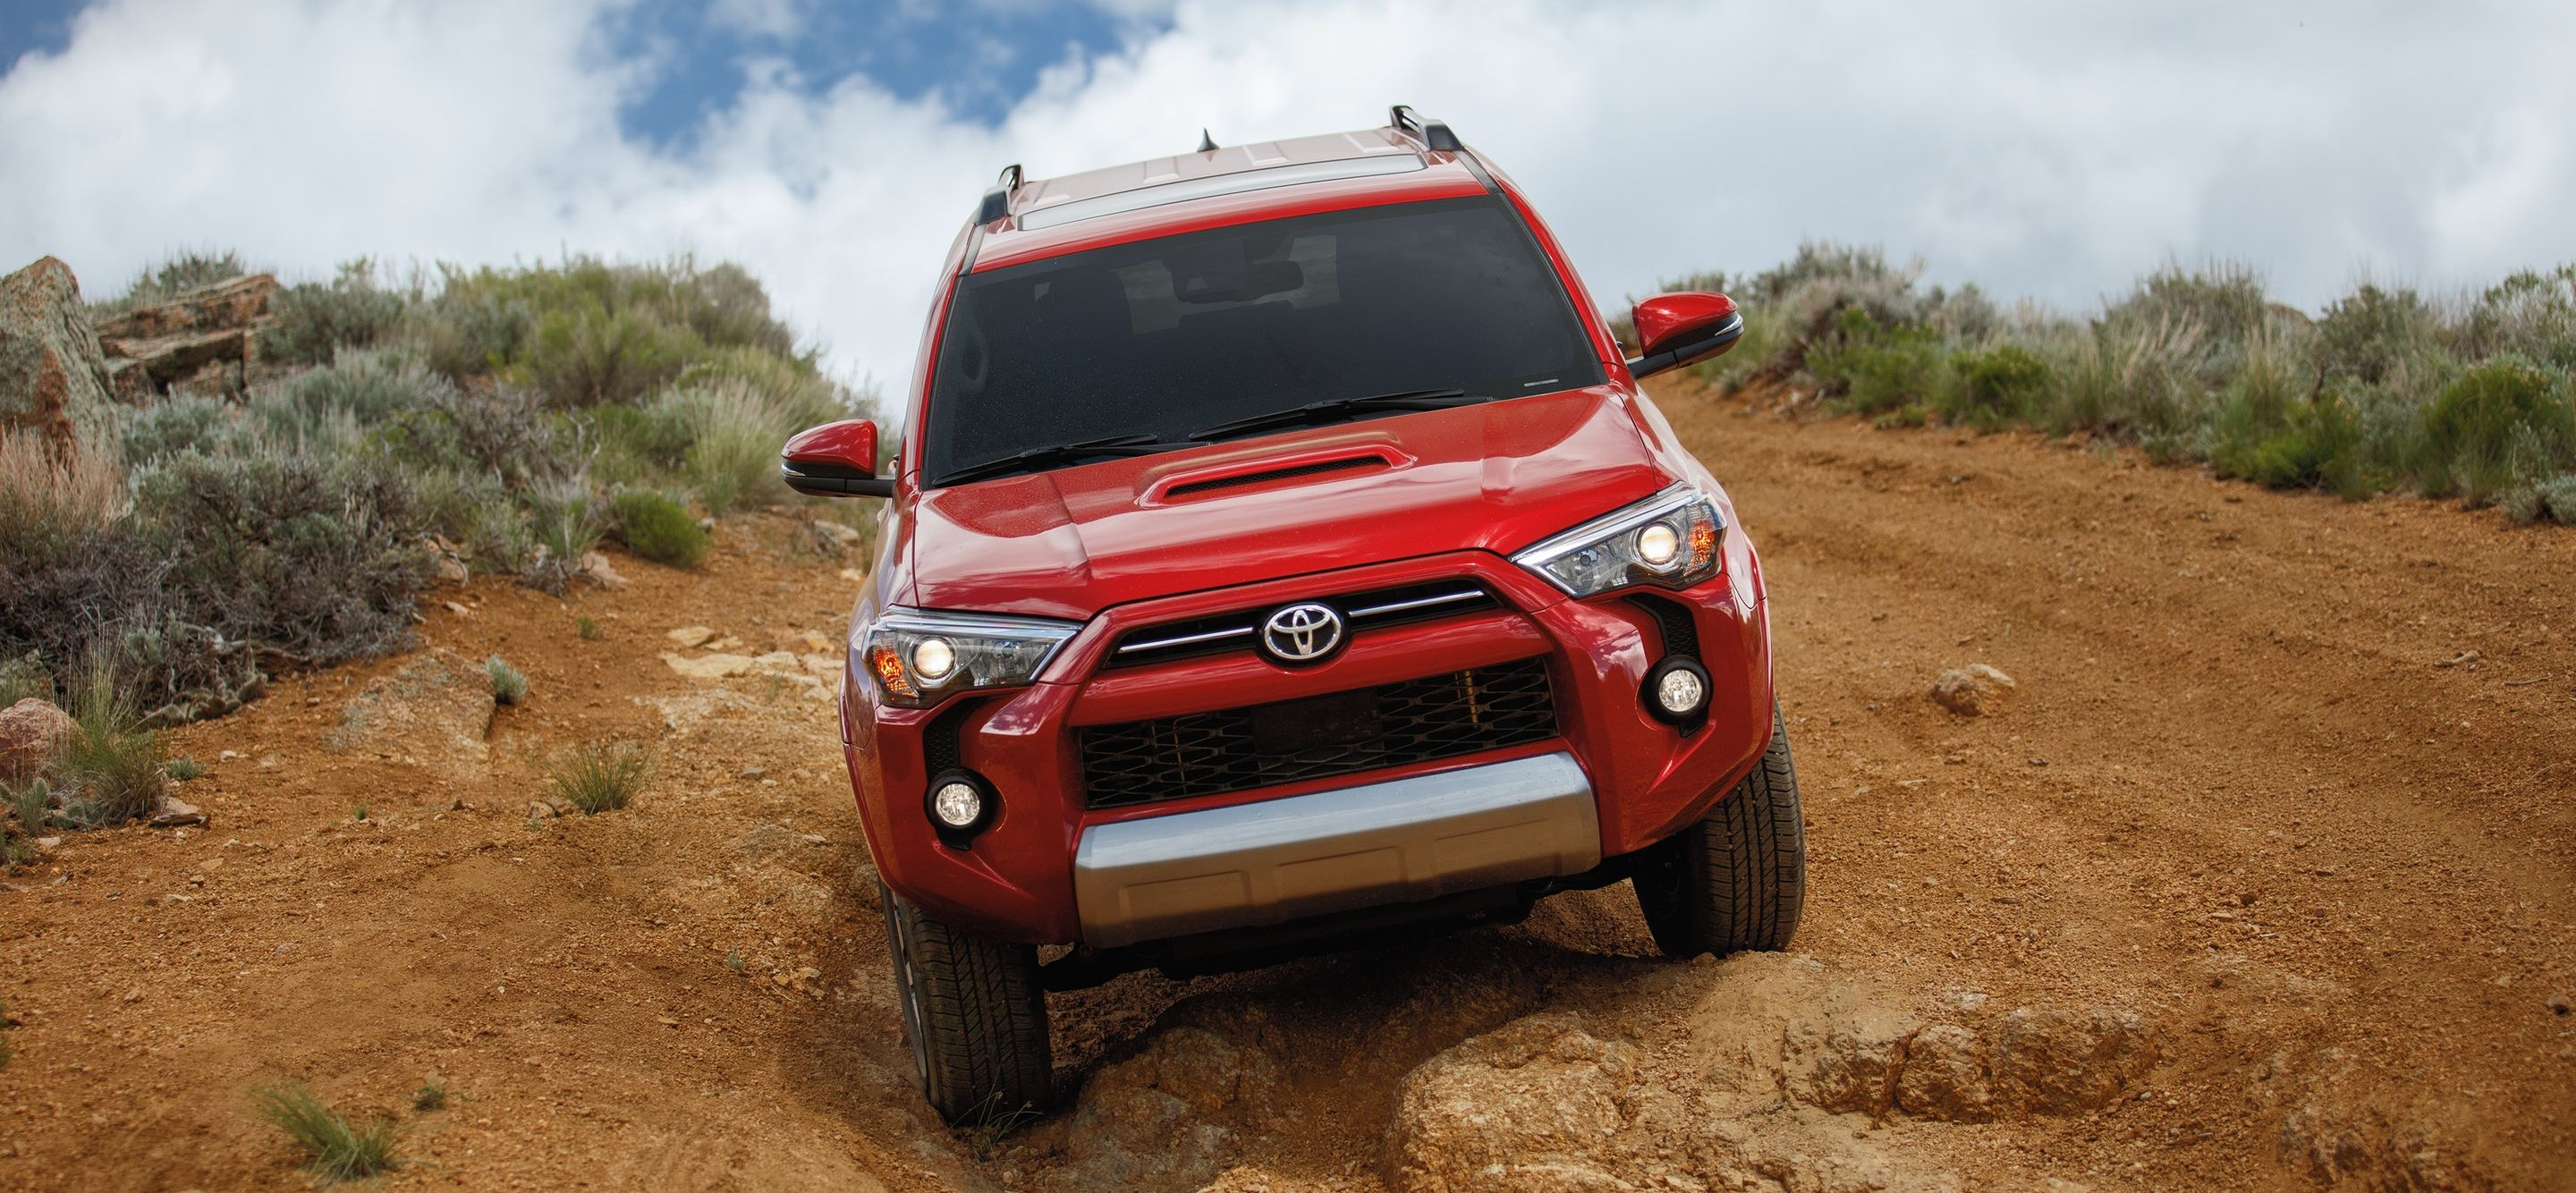 2020 Toyota 4Runner for Sale near Independence, MO, 64055